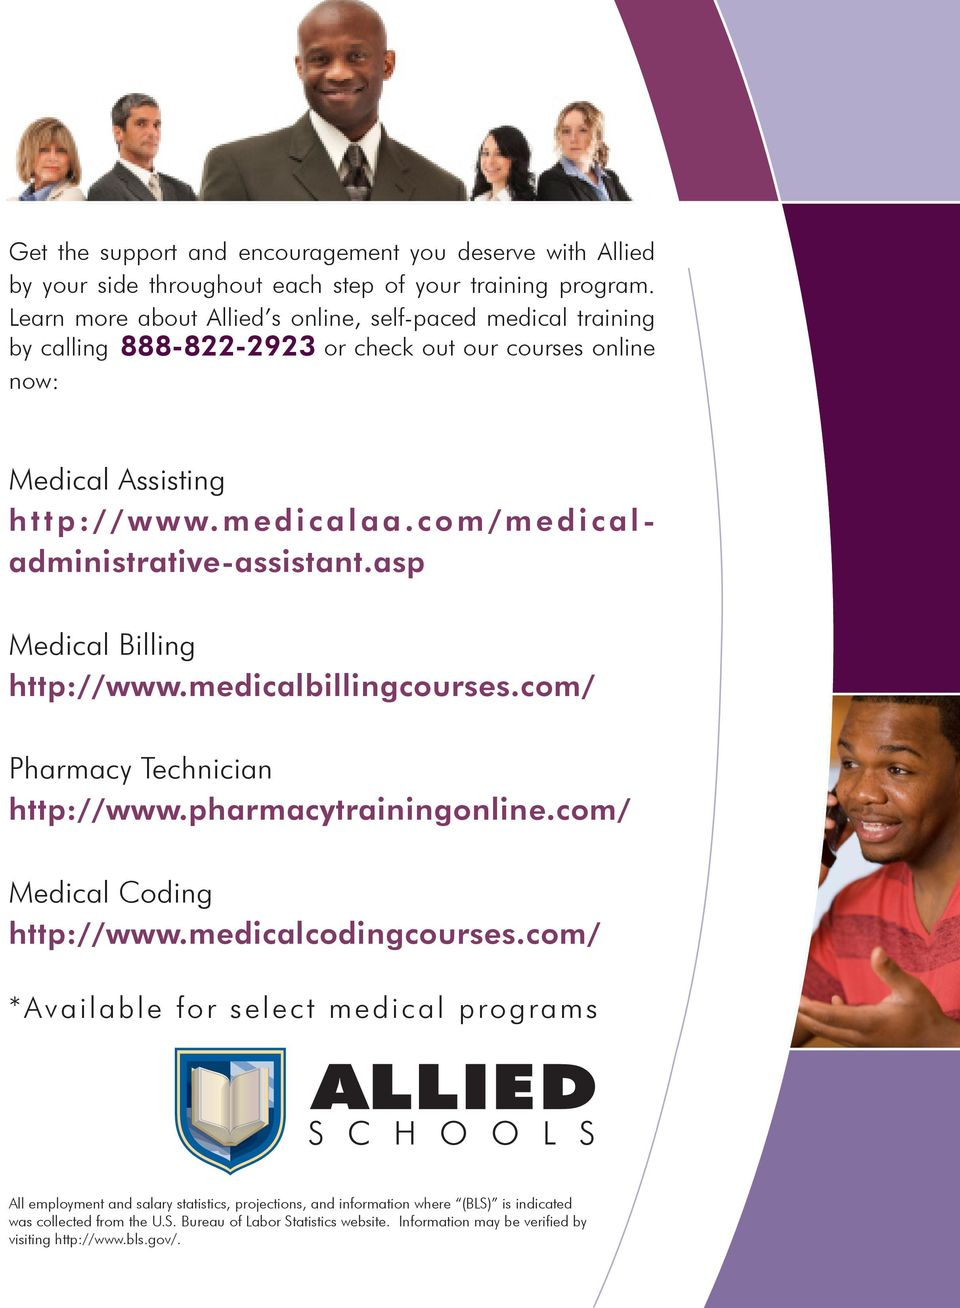 com/medicaladministrative-assistant.asp Medical Billing http://www.medicalbillingcourses.com/ Pharmacy Technician http://www.pharmacytrainingonline.com/ Medical Coding http://www.